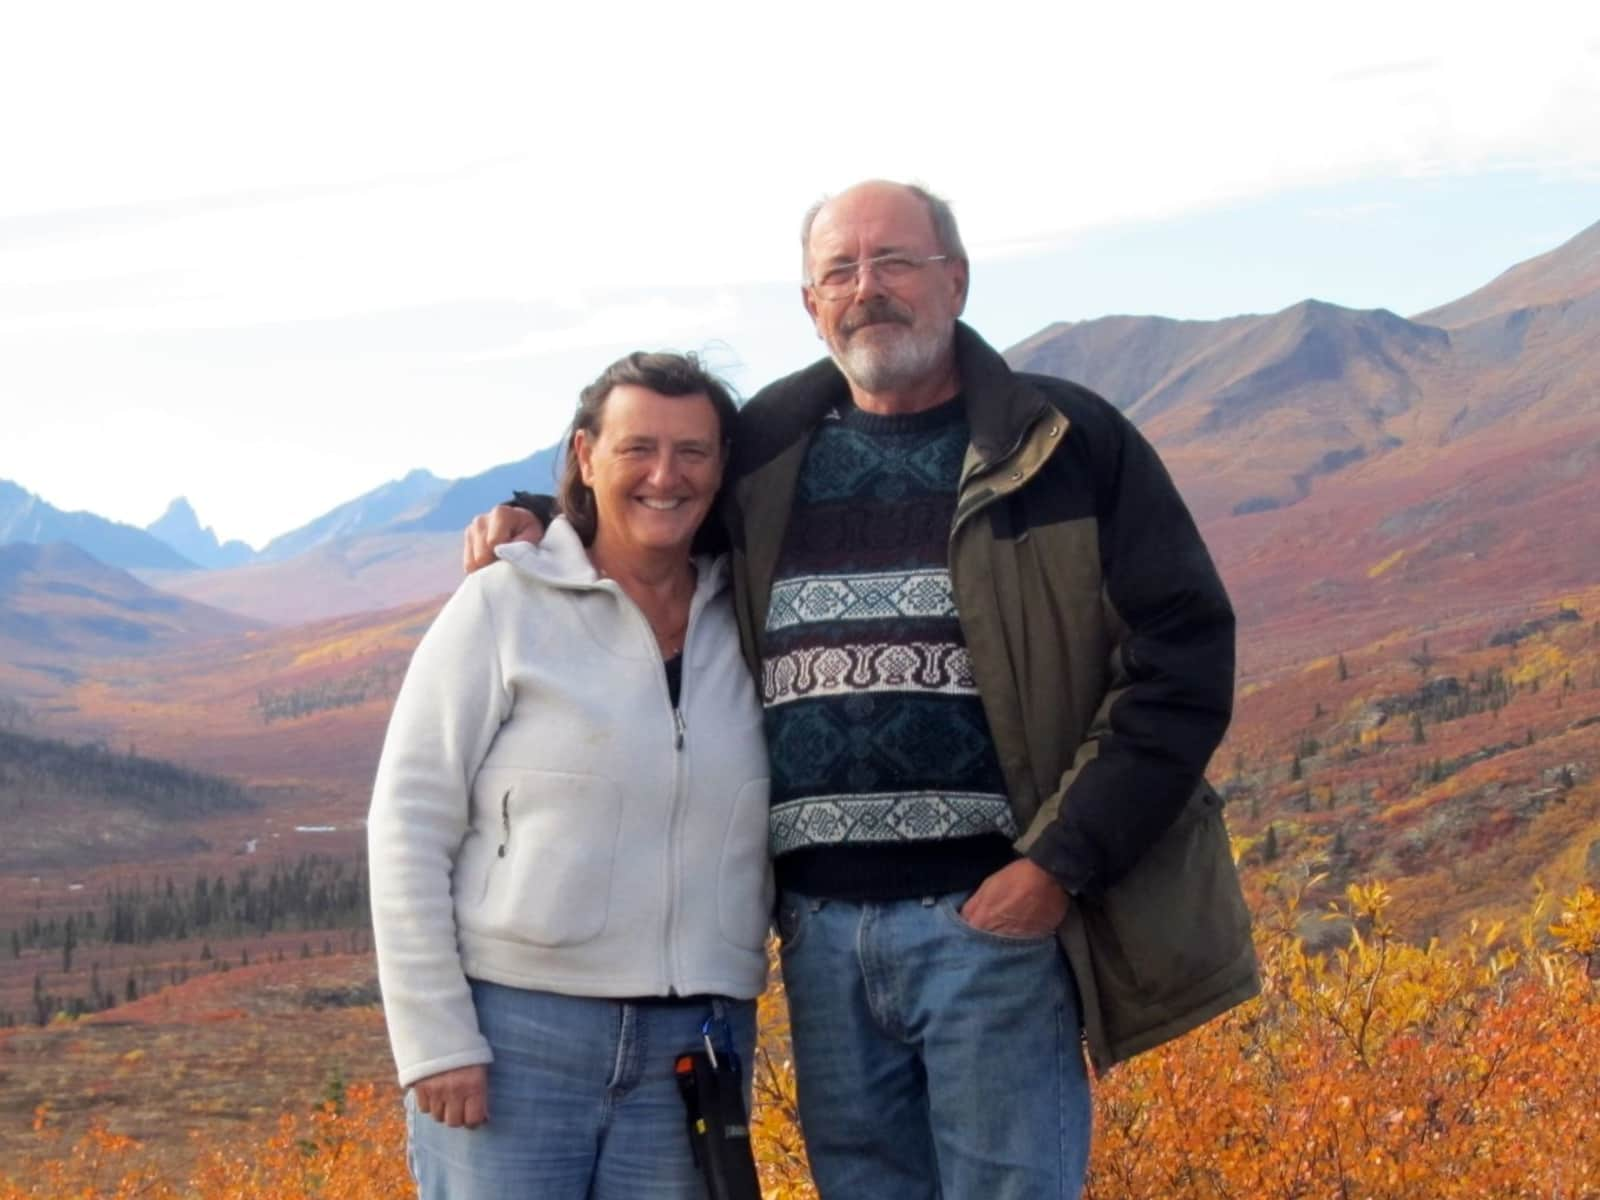 Lorraine & James from Powell River, British Columbia, Canada